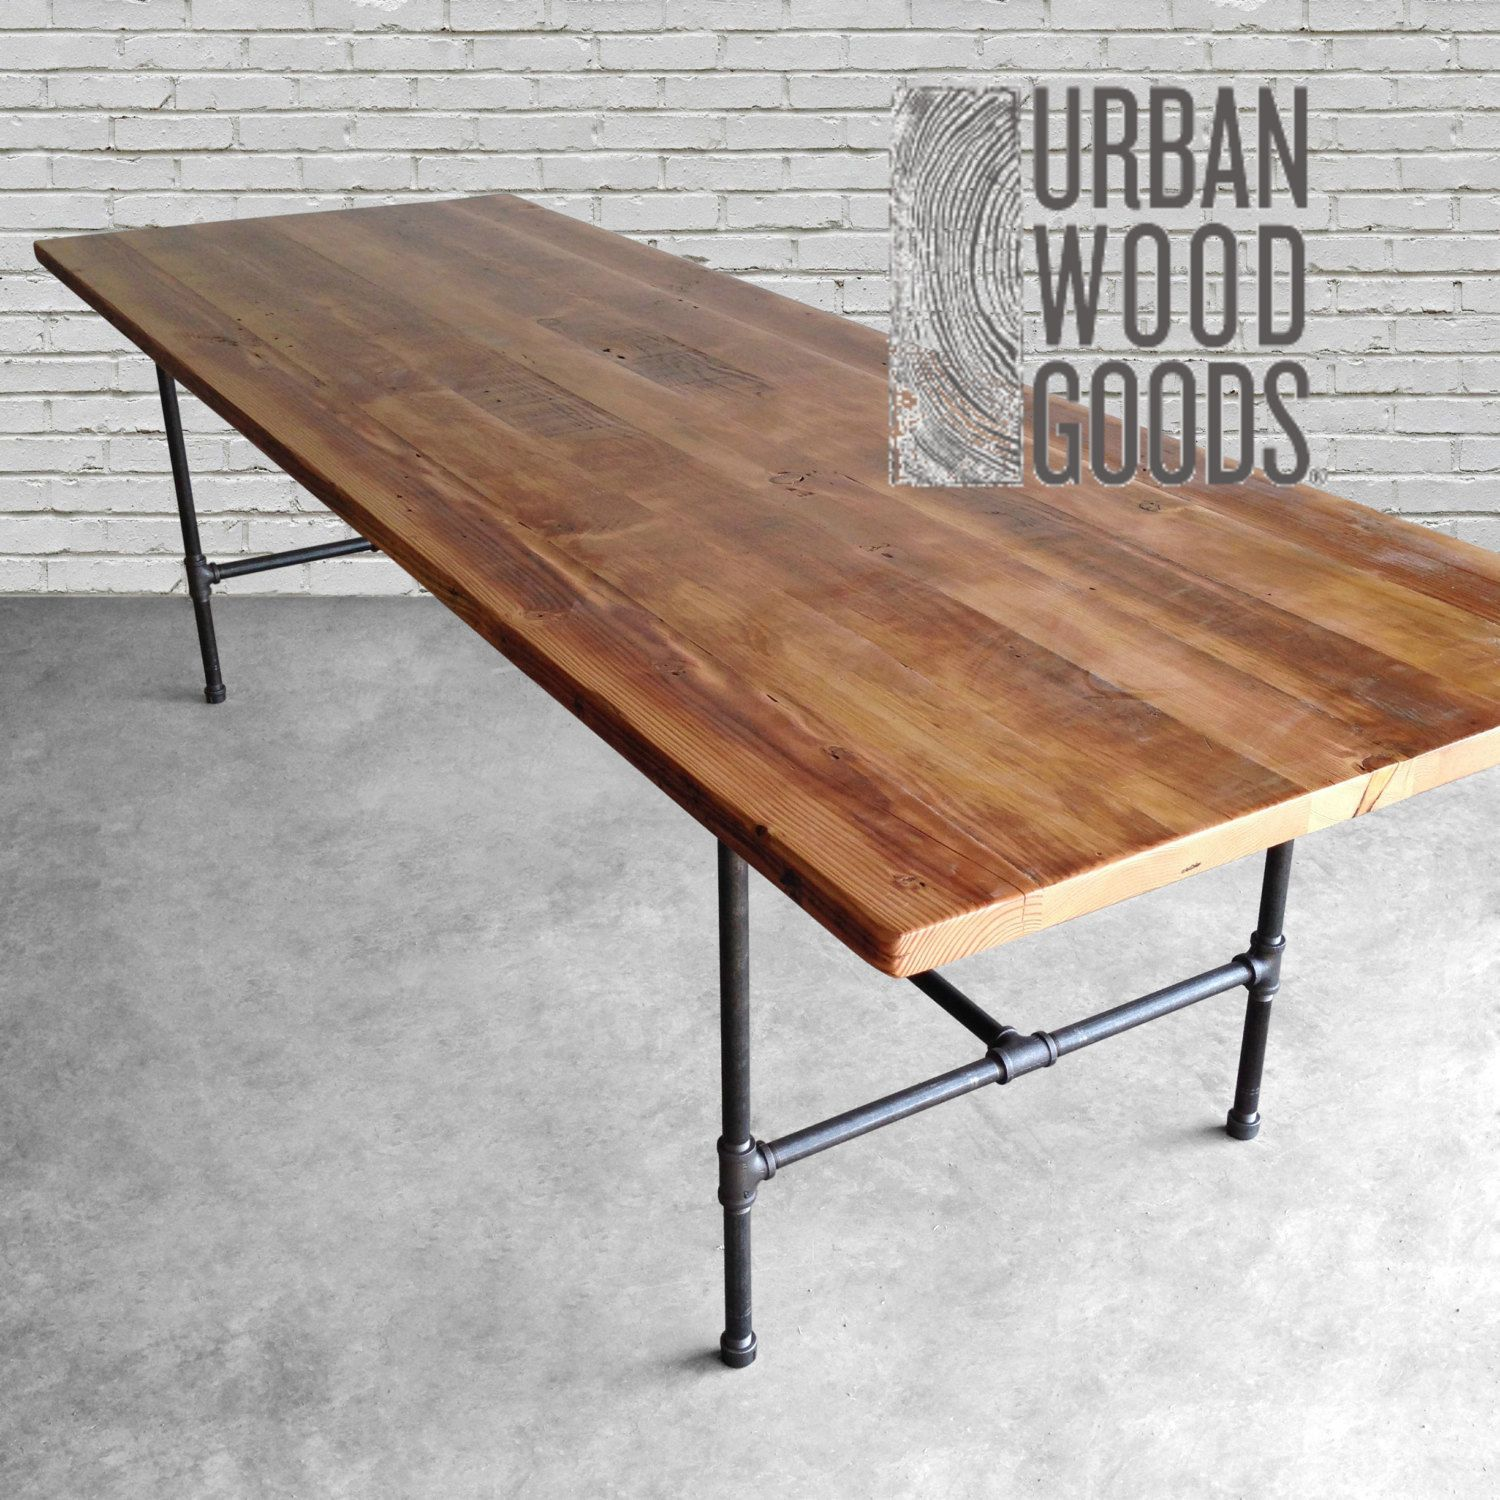 Captivating Wood Dining Table Made With Reclaimed Wood Top And Iron Pipe Legs.  Multi Purpose